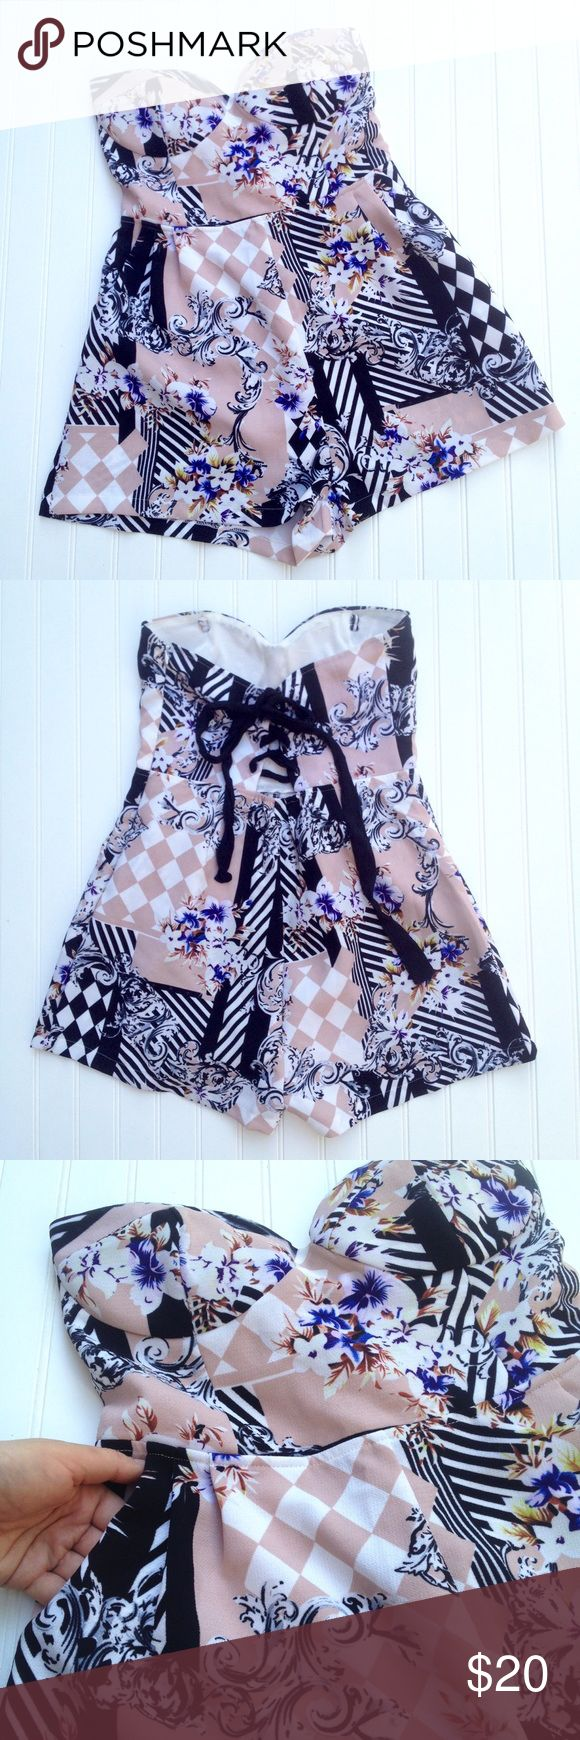 """Floral and checked strapless corset back romper Sexy strapless romper from Ally Fashion Australia has a blush pink background overlaid with white, purple and brown florals and black and white checks and stripes. Sweetheart neckline has lightly lined cups (no underwire) and corset lace-up back. Invisible side zipper. AU size 12 is equivalent to US size 8. Bust: approx. 15"""" (adjustable with back) Waist: 14.5"""" Length: 24"""". VGUC--has a slight run at bottom of back right leg. See last pic for…"""